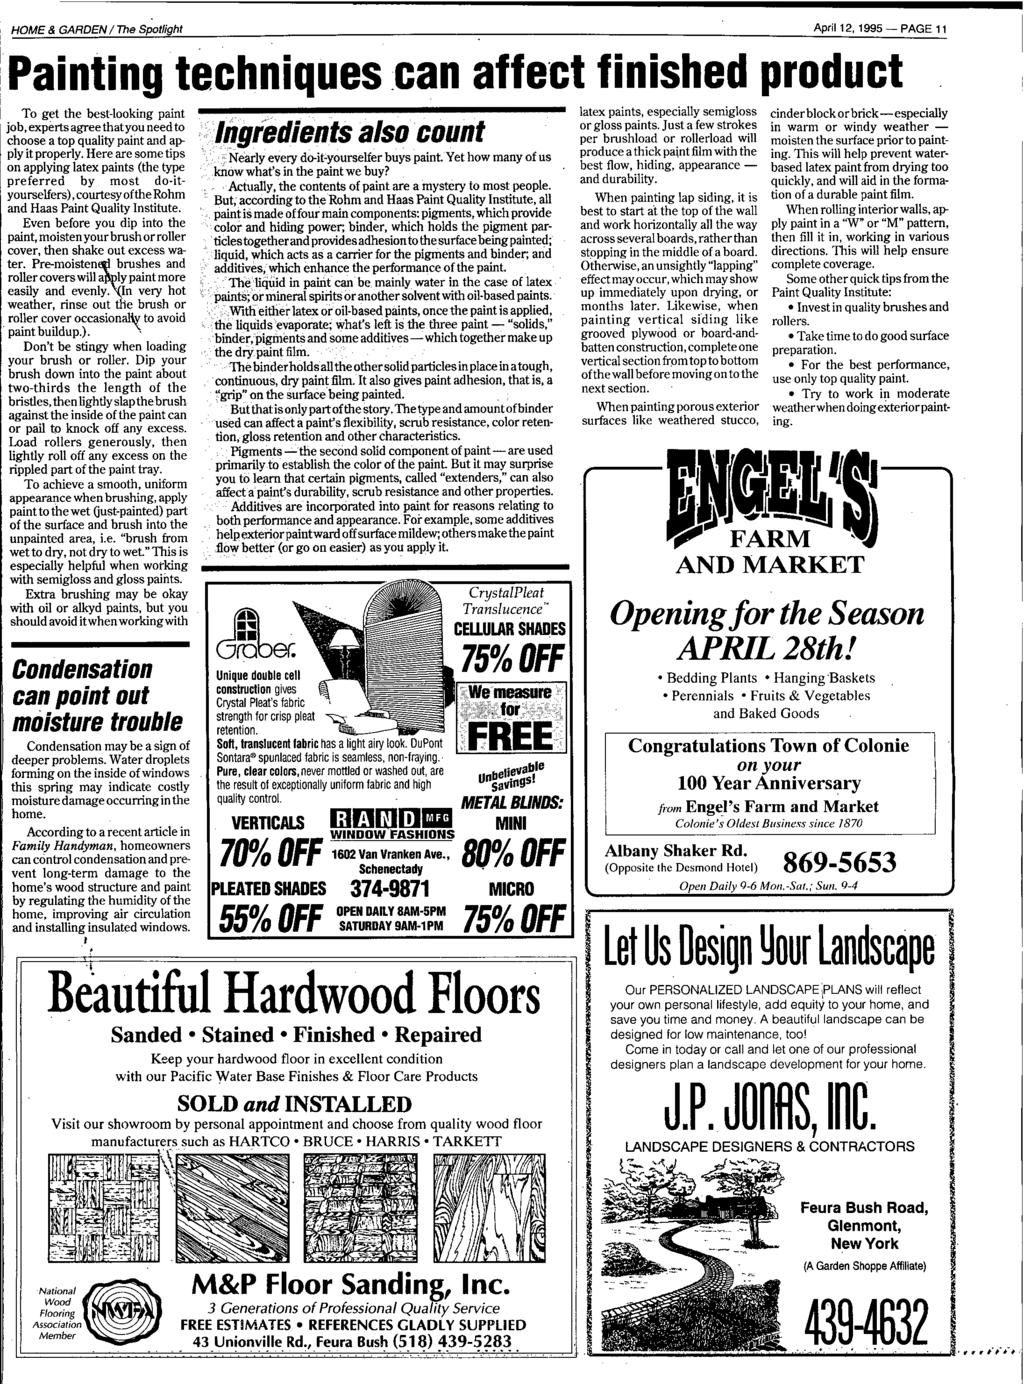 Headline Forty Point Water Foes Undaunted Pdf Troubleshooting Dead Outlets The Family Handyman Home Garden Spotlight April12 1995 Page 11 Painting Techniques